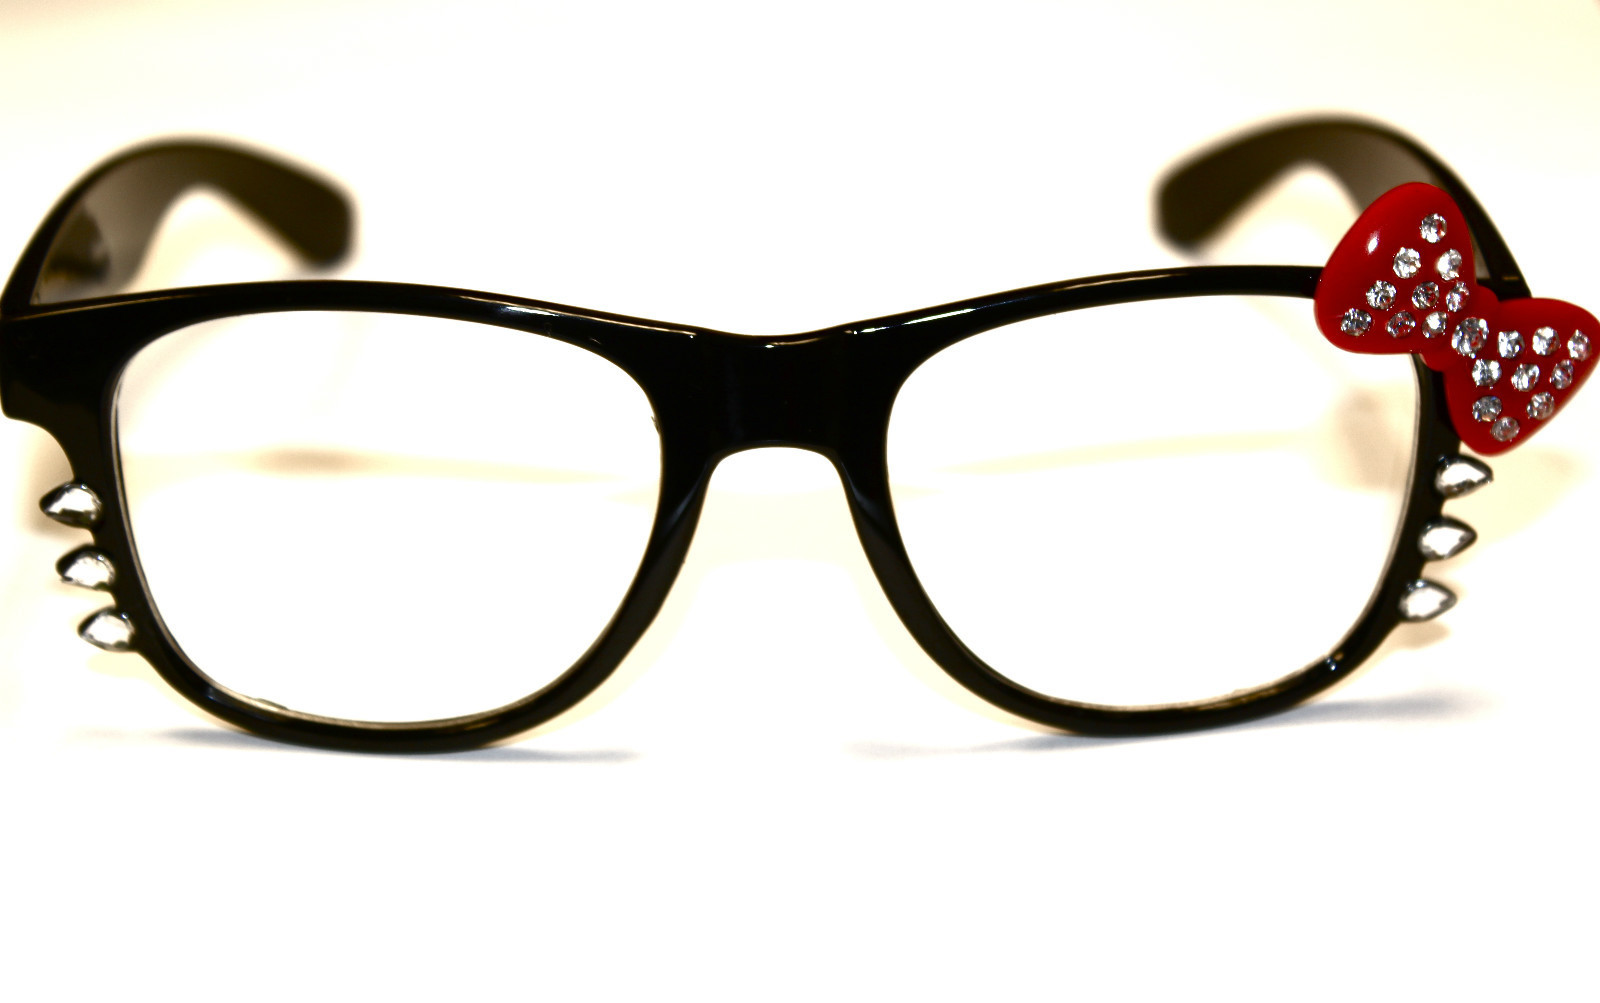 1600x1003 Geek Glasses Clipart Nerd Glasses Black With White Clipart Free Cl